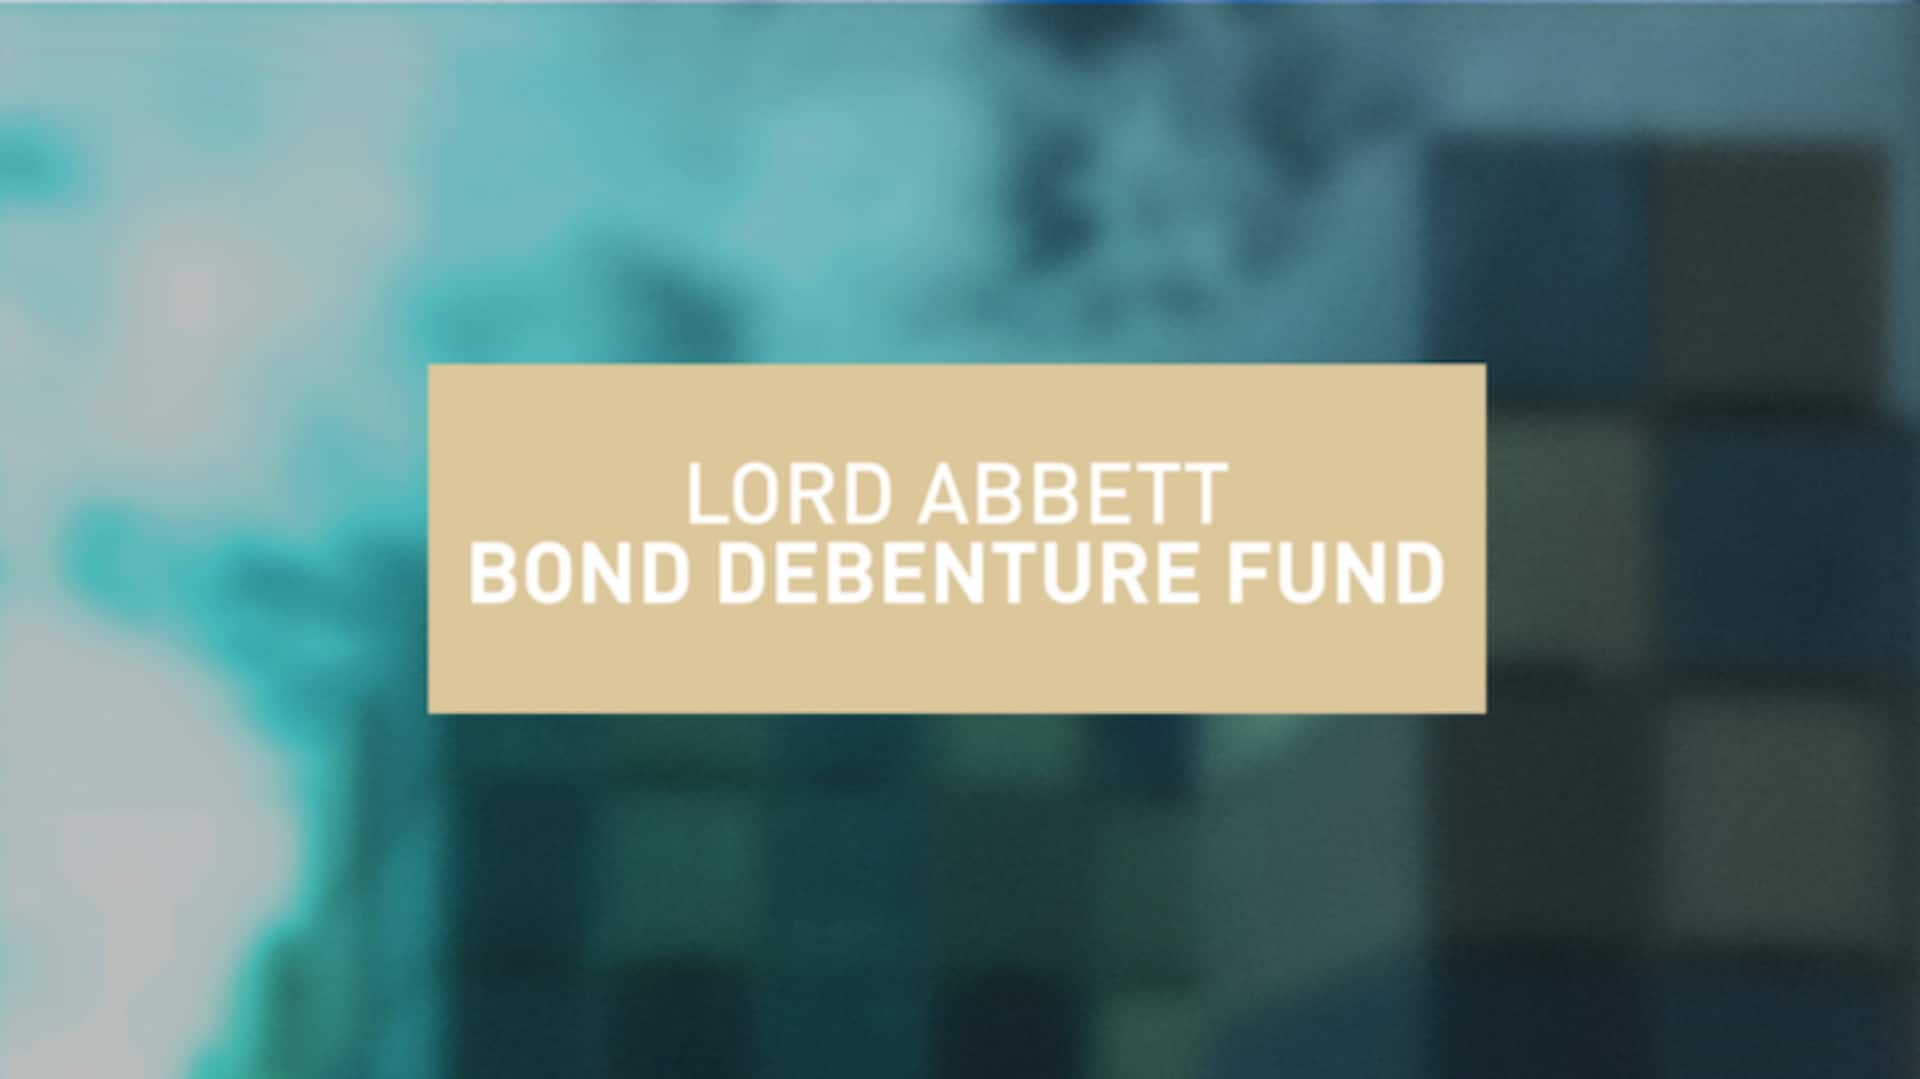 The Lord Abbett Bond Debenture Fund